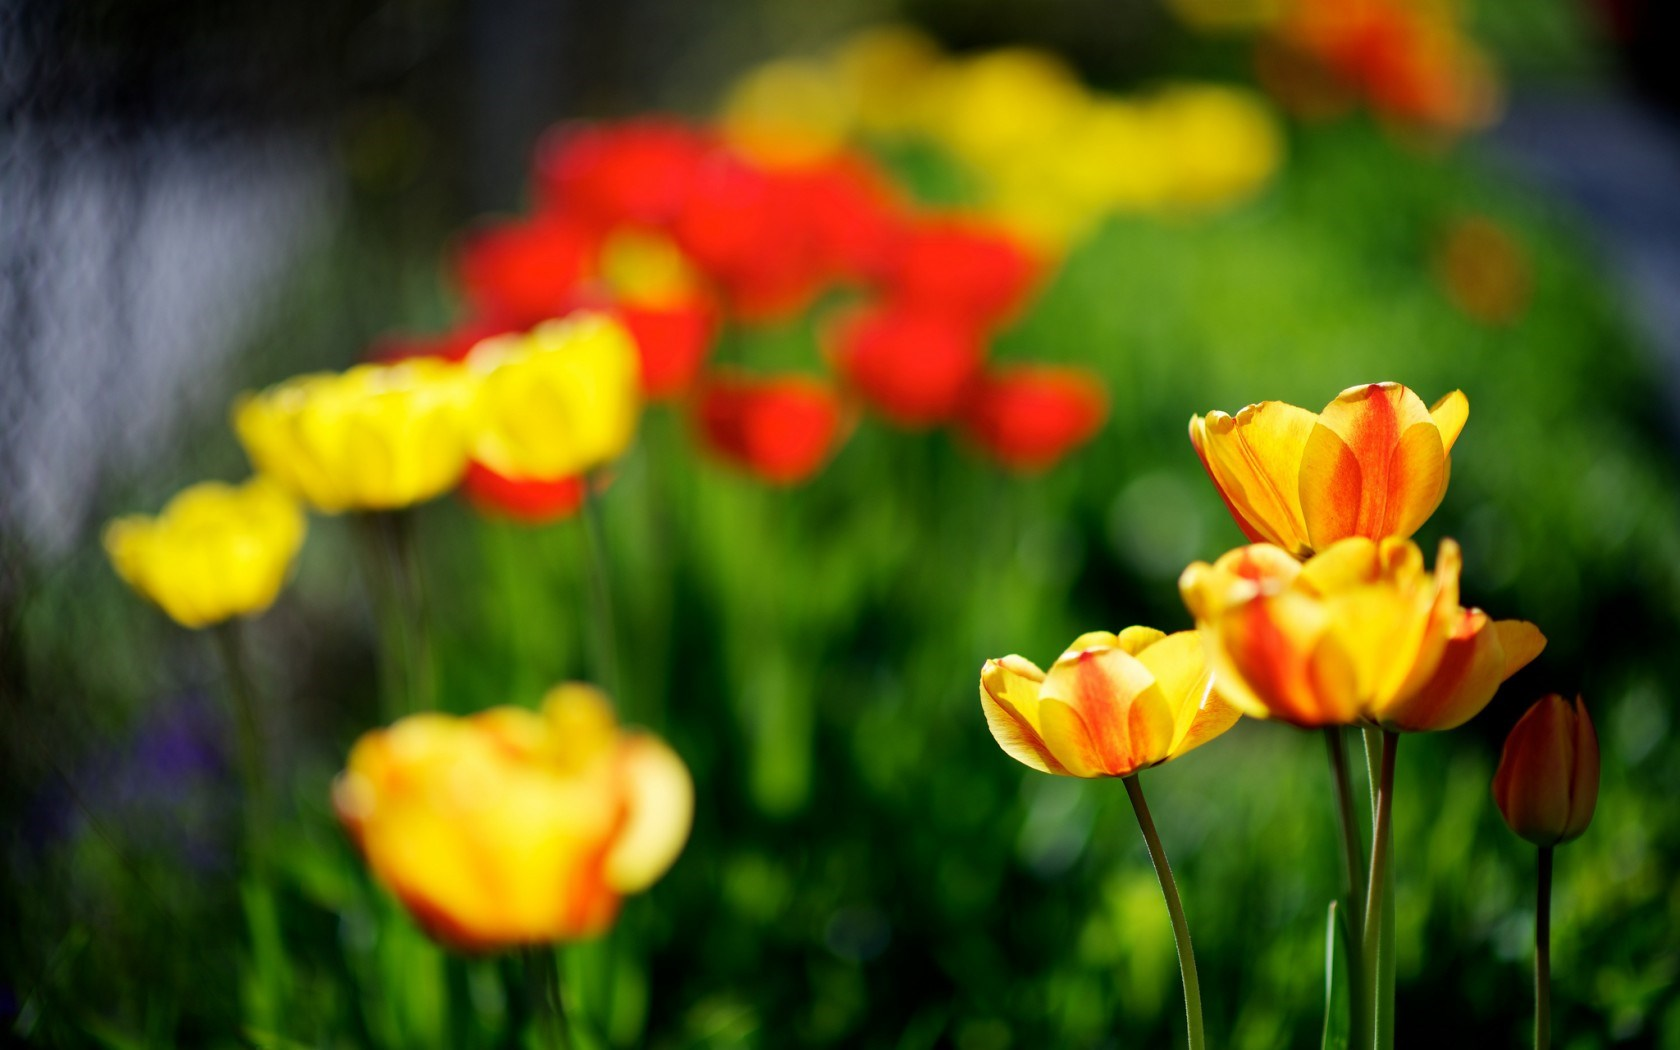 spring city tulips wallpaper - photo #8